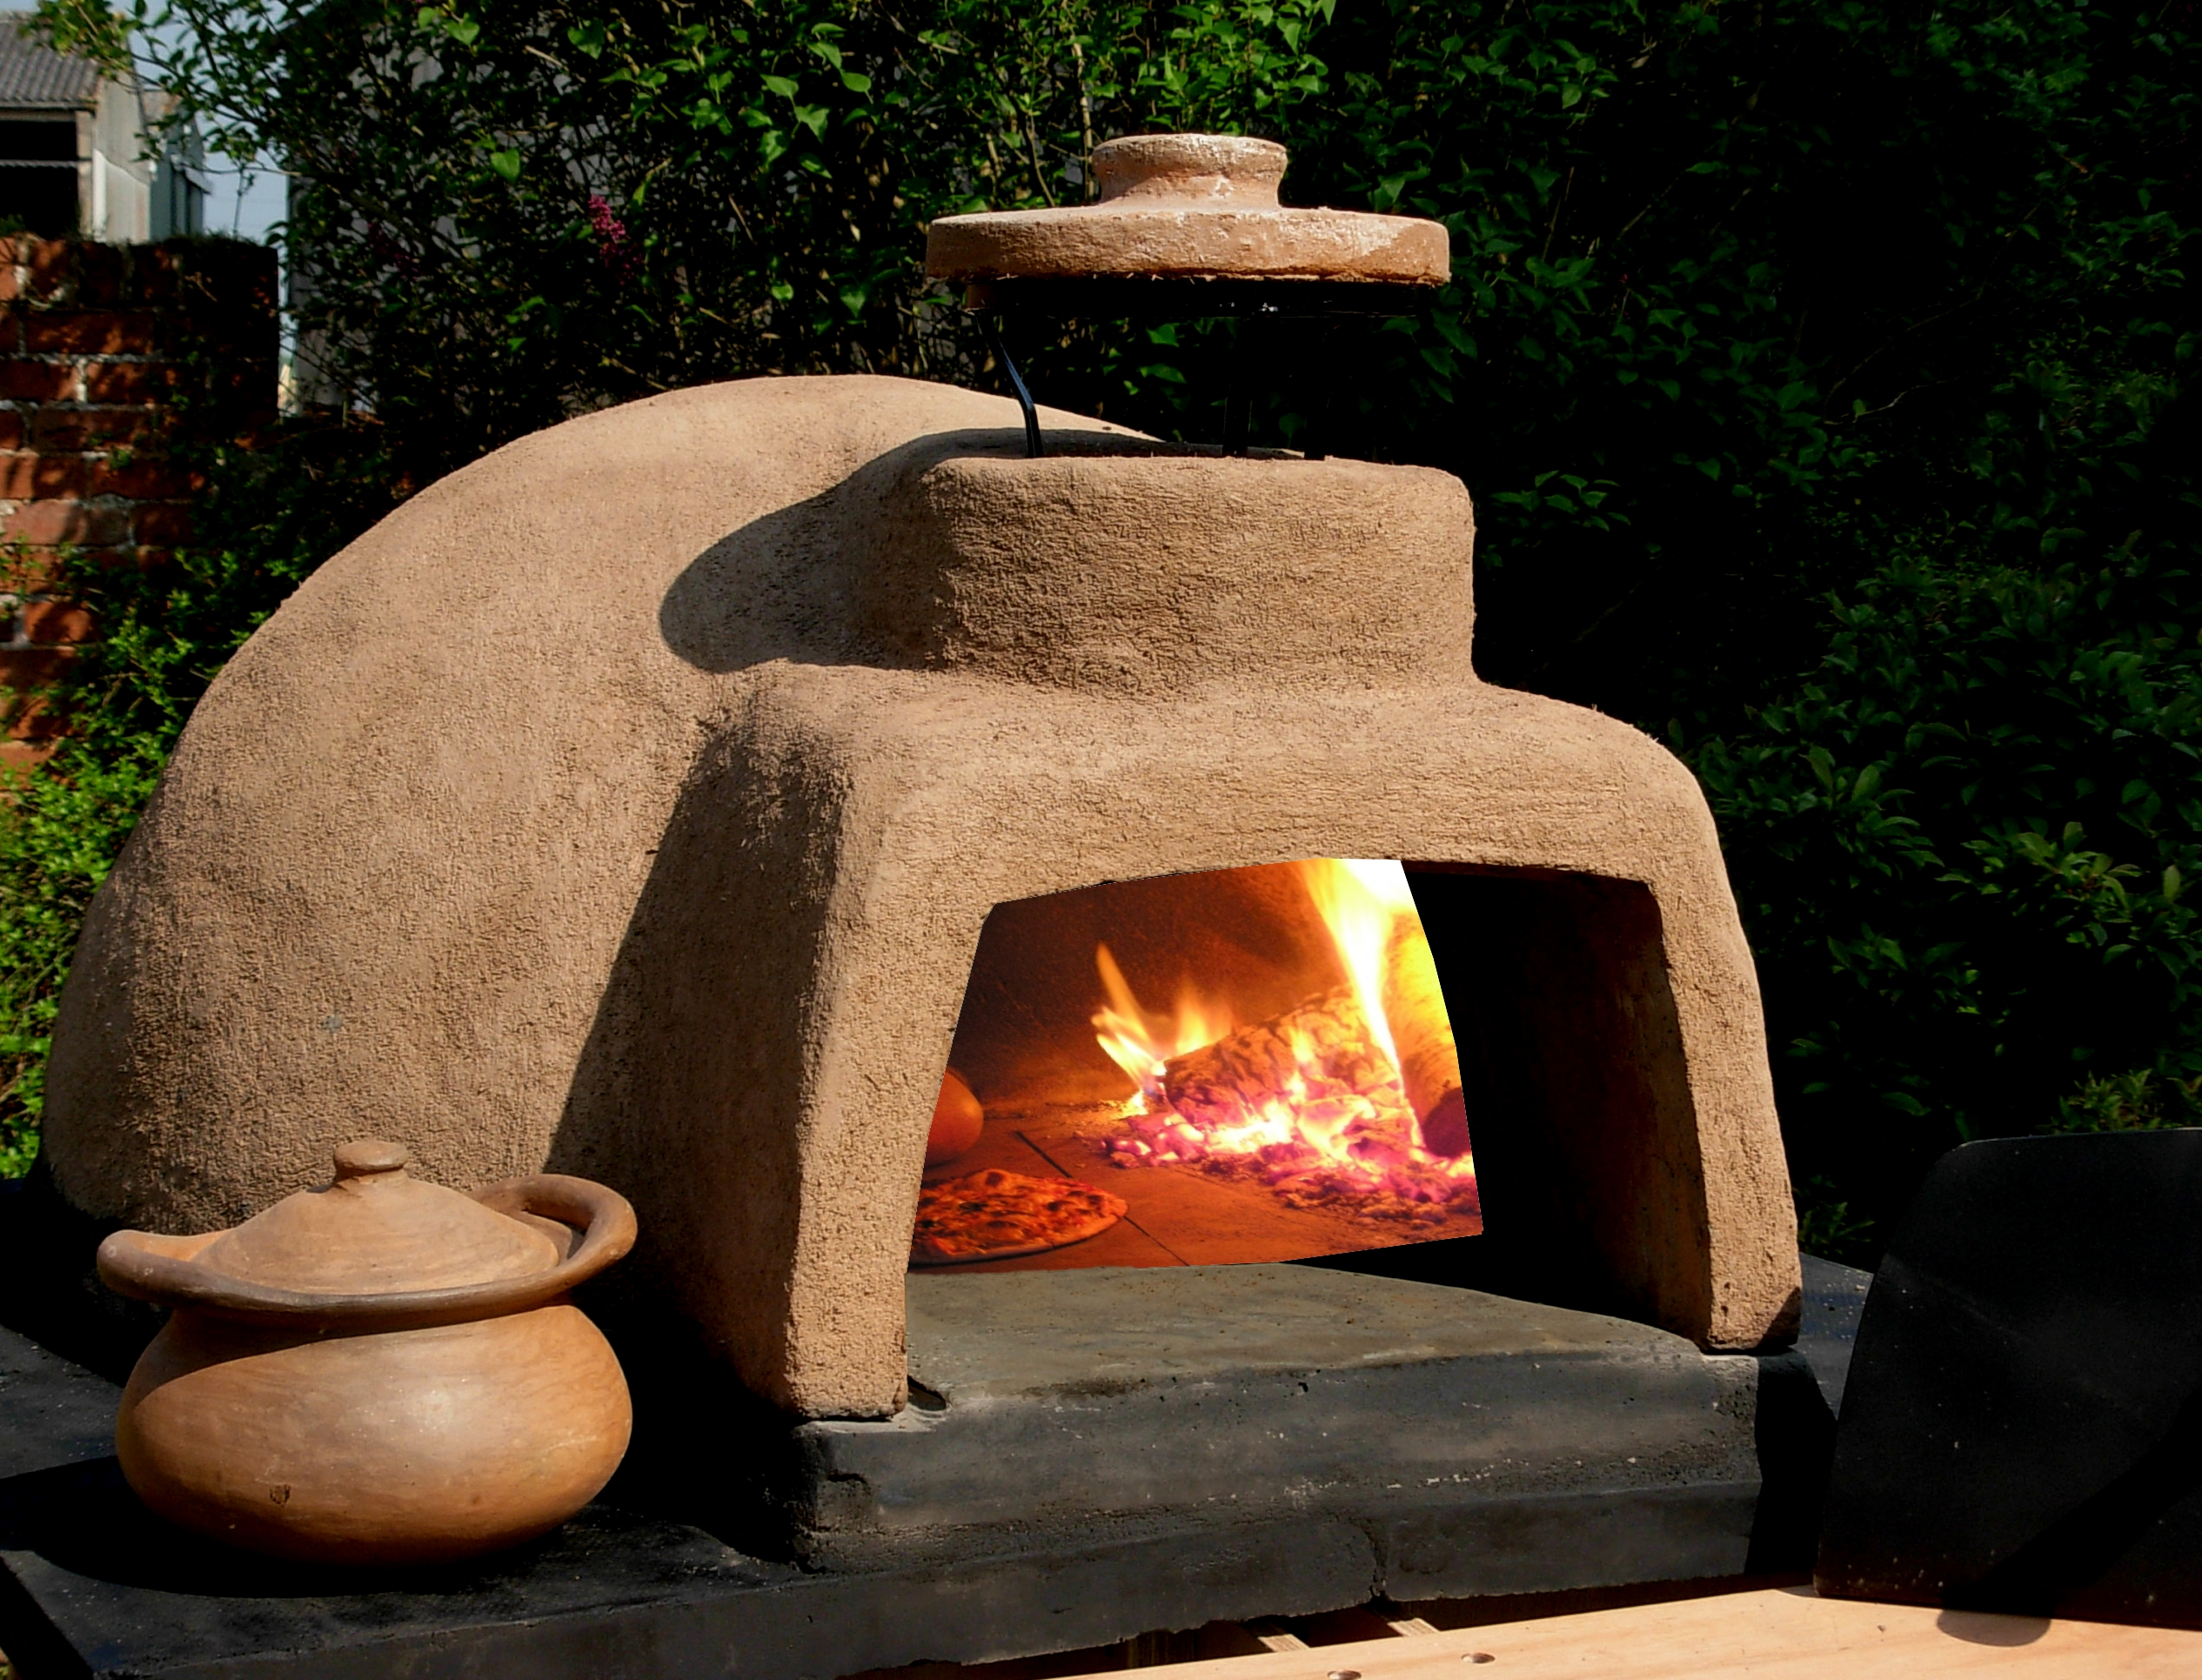 15 Diy Pizza Oven Plans For Outdoors Backing The Self Sufficient